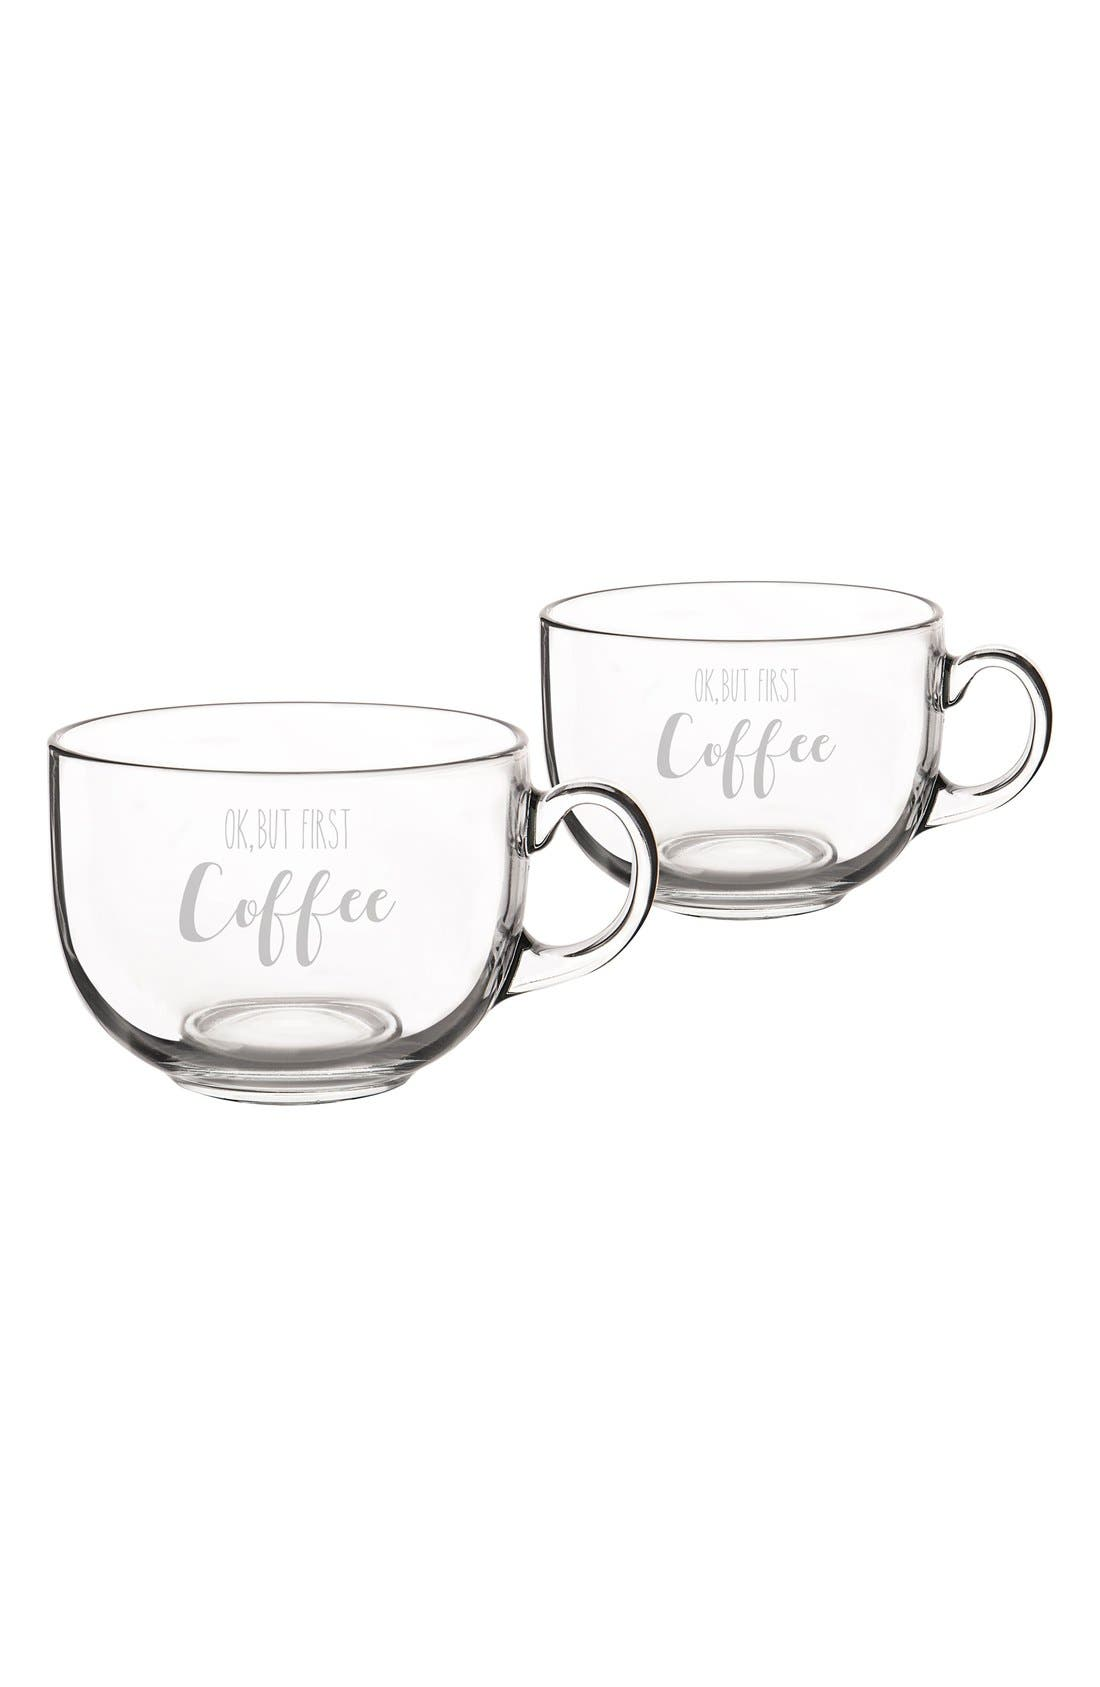 Alternate Image 2  - Cathy's Concepts But First Coffee Set of 2 Glass Mugs